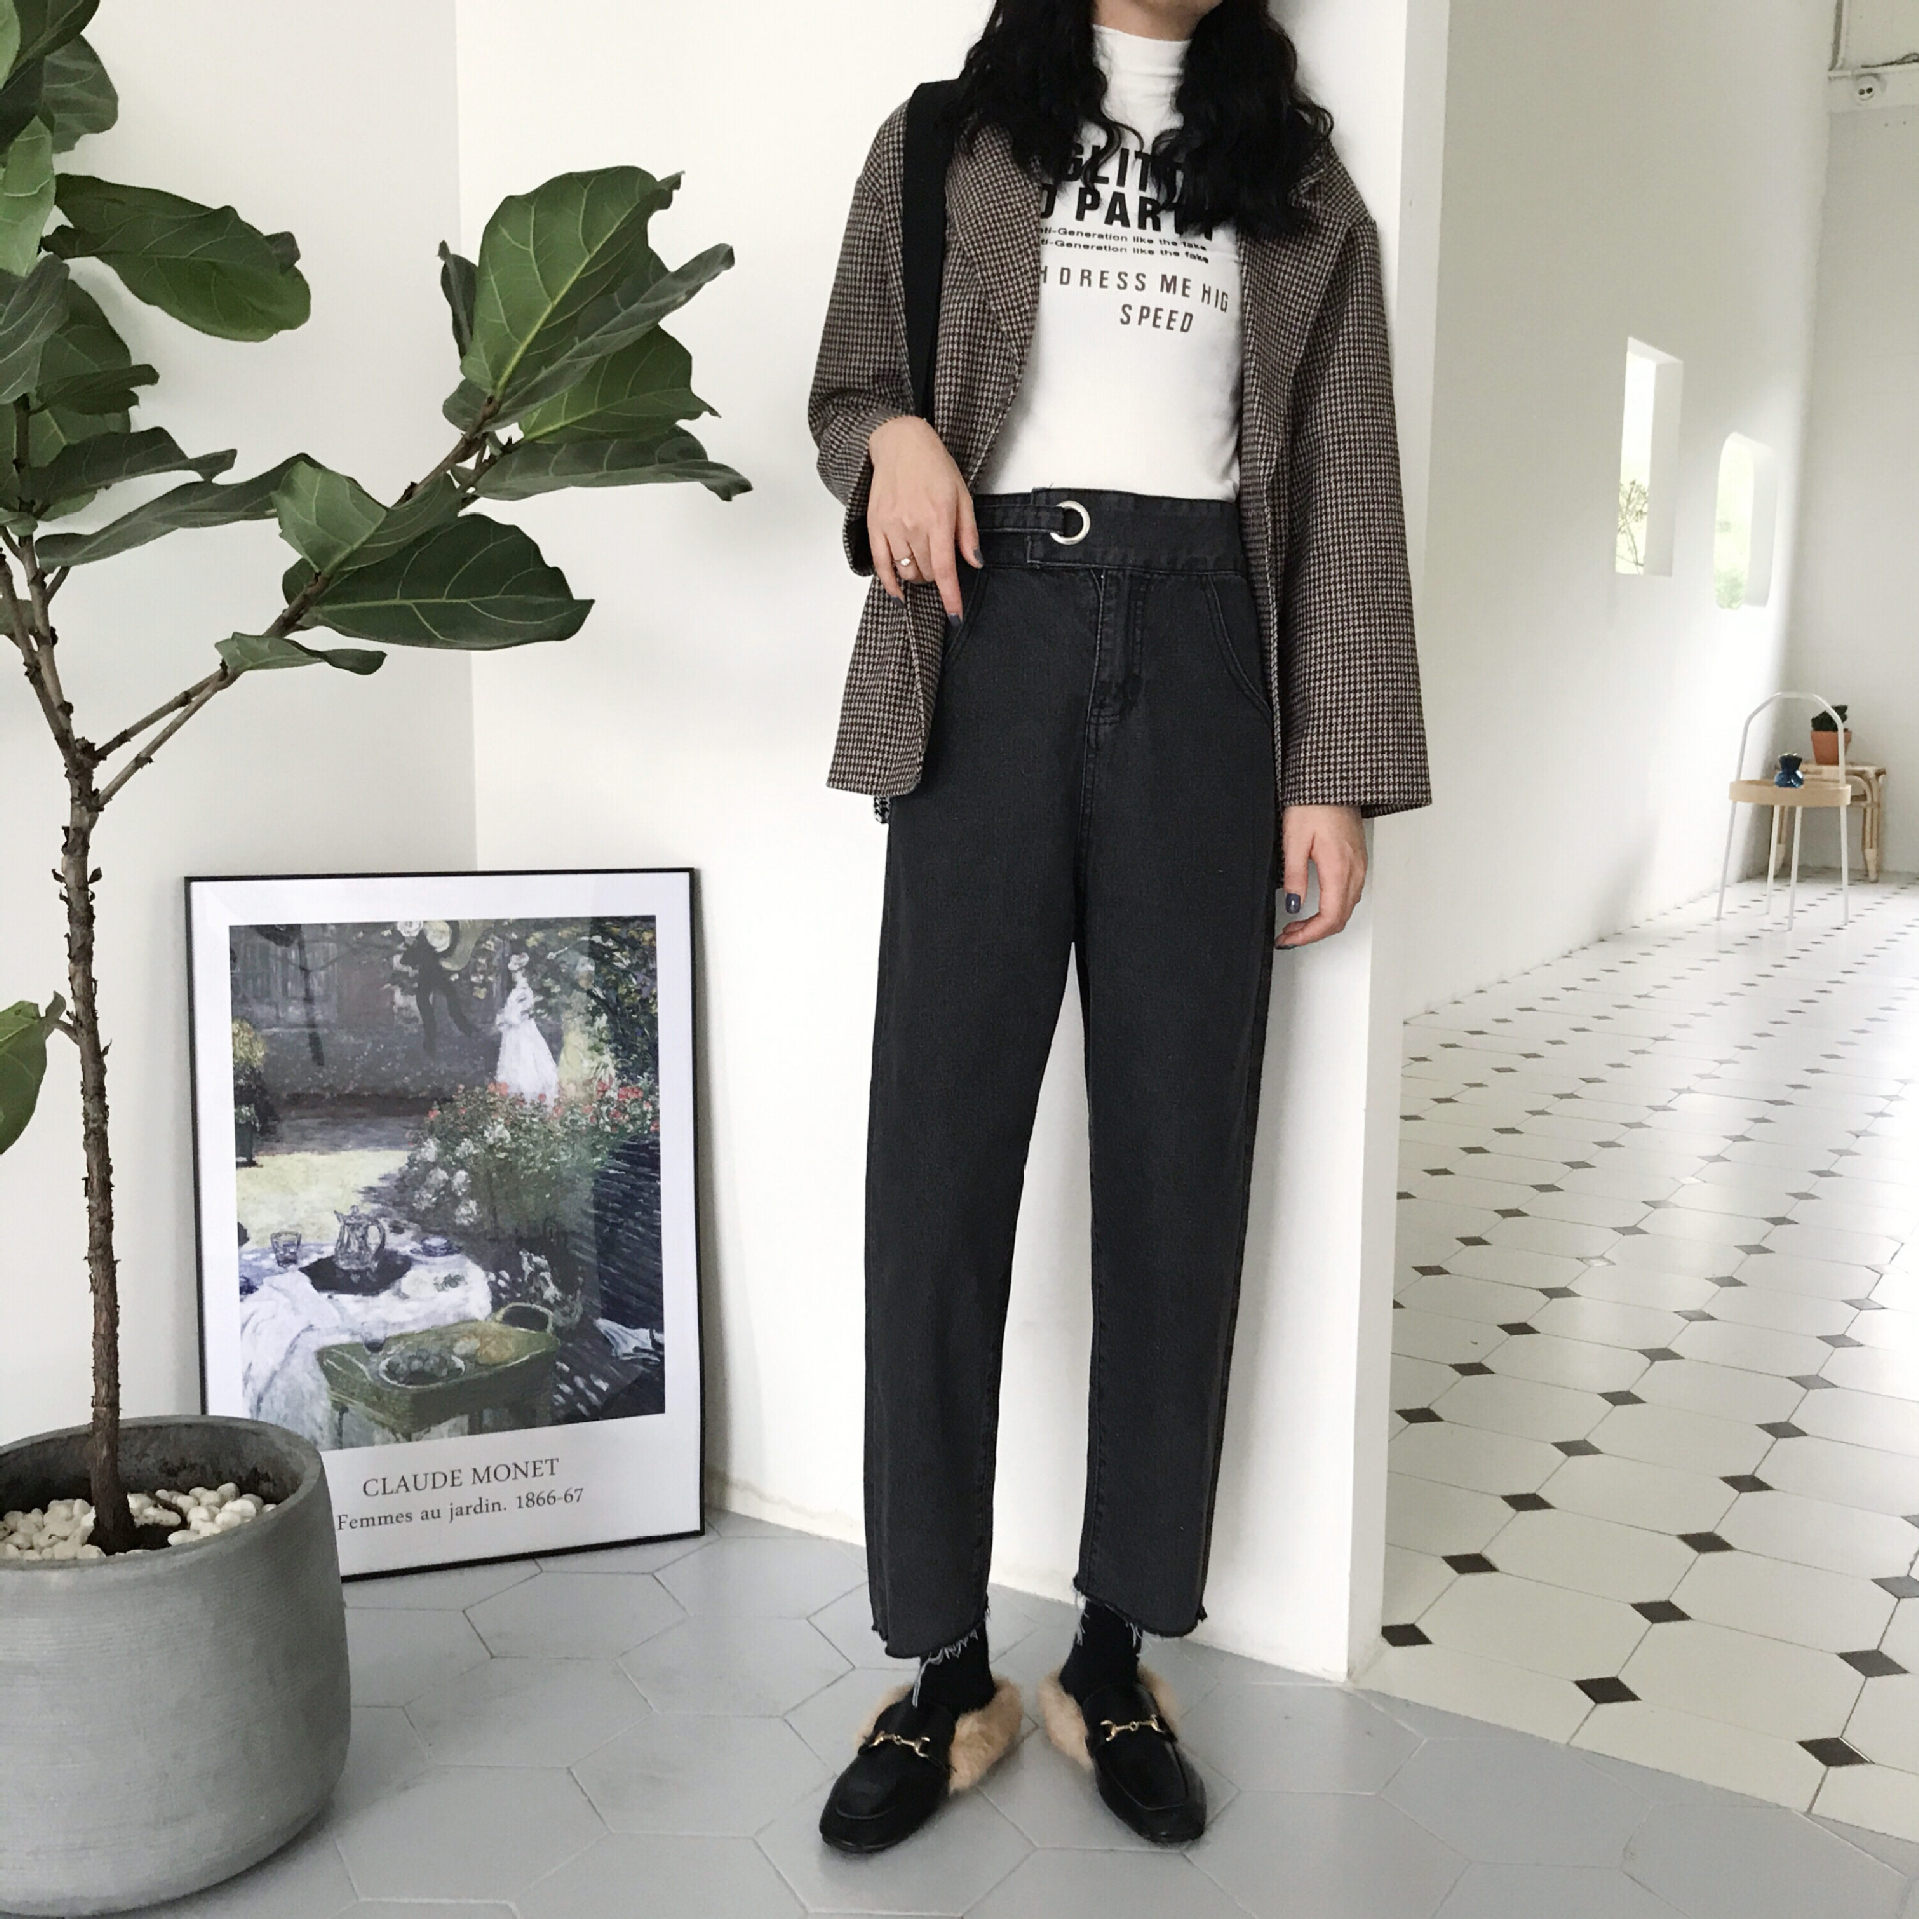 2019 Spring And Autumn Women's Korean-style Loose-Fit Versatile Water Jeans High-waisted Buckle Casual Pants